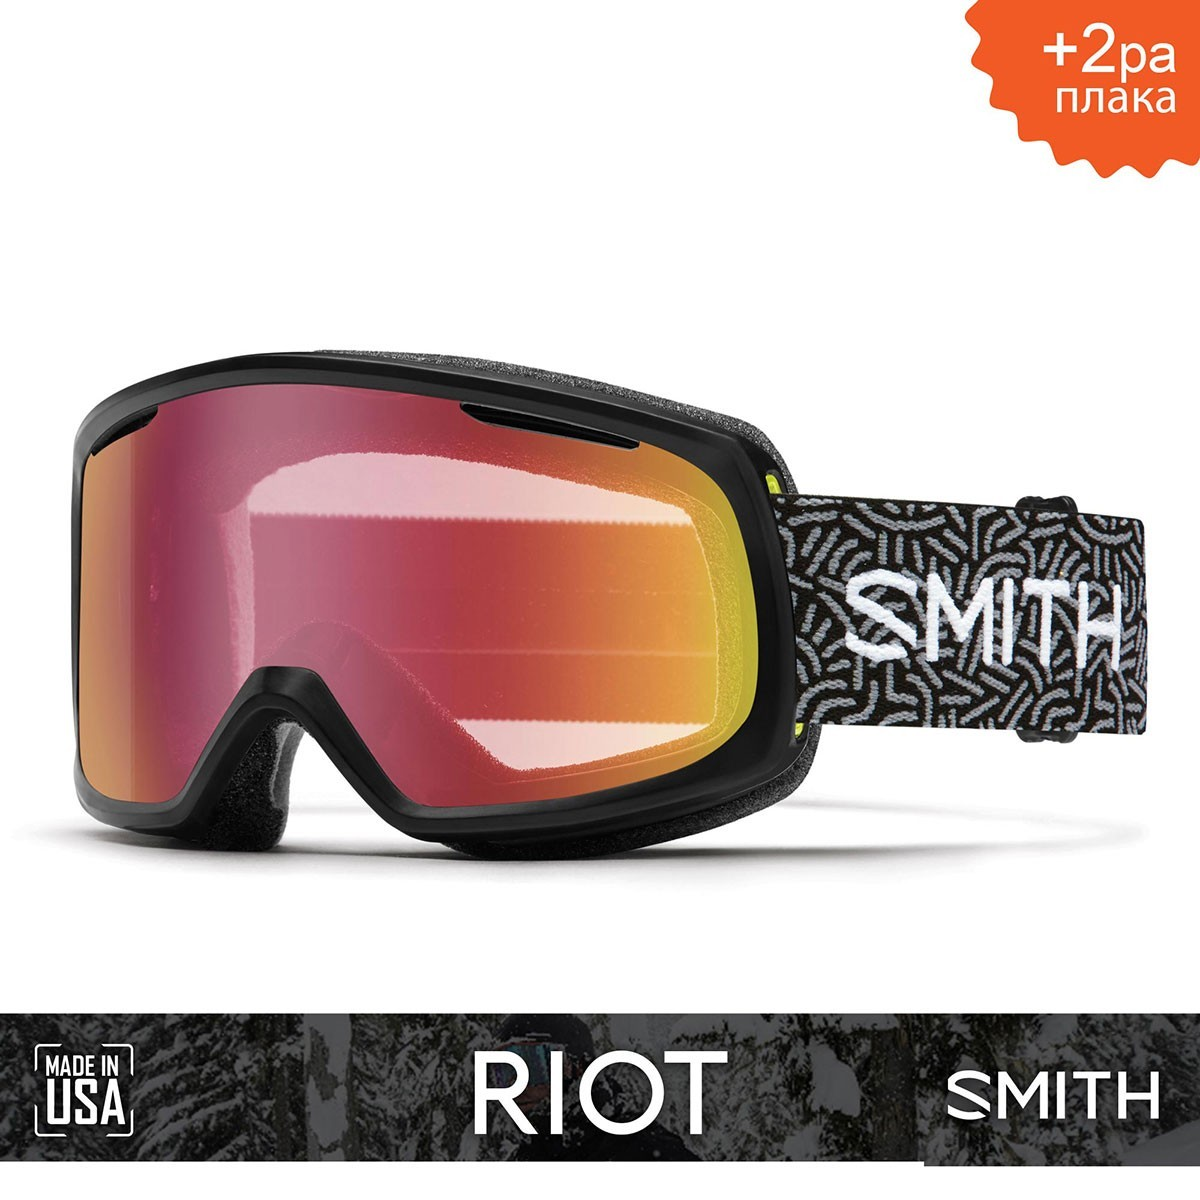 SMITH RIOT Blacknewwave | S2 RED Sensor Mirror - Изображение - AQUAMATRIX